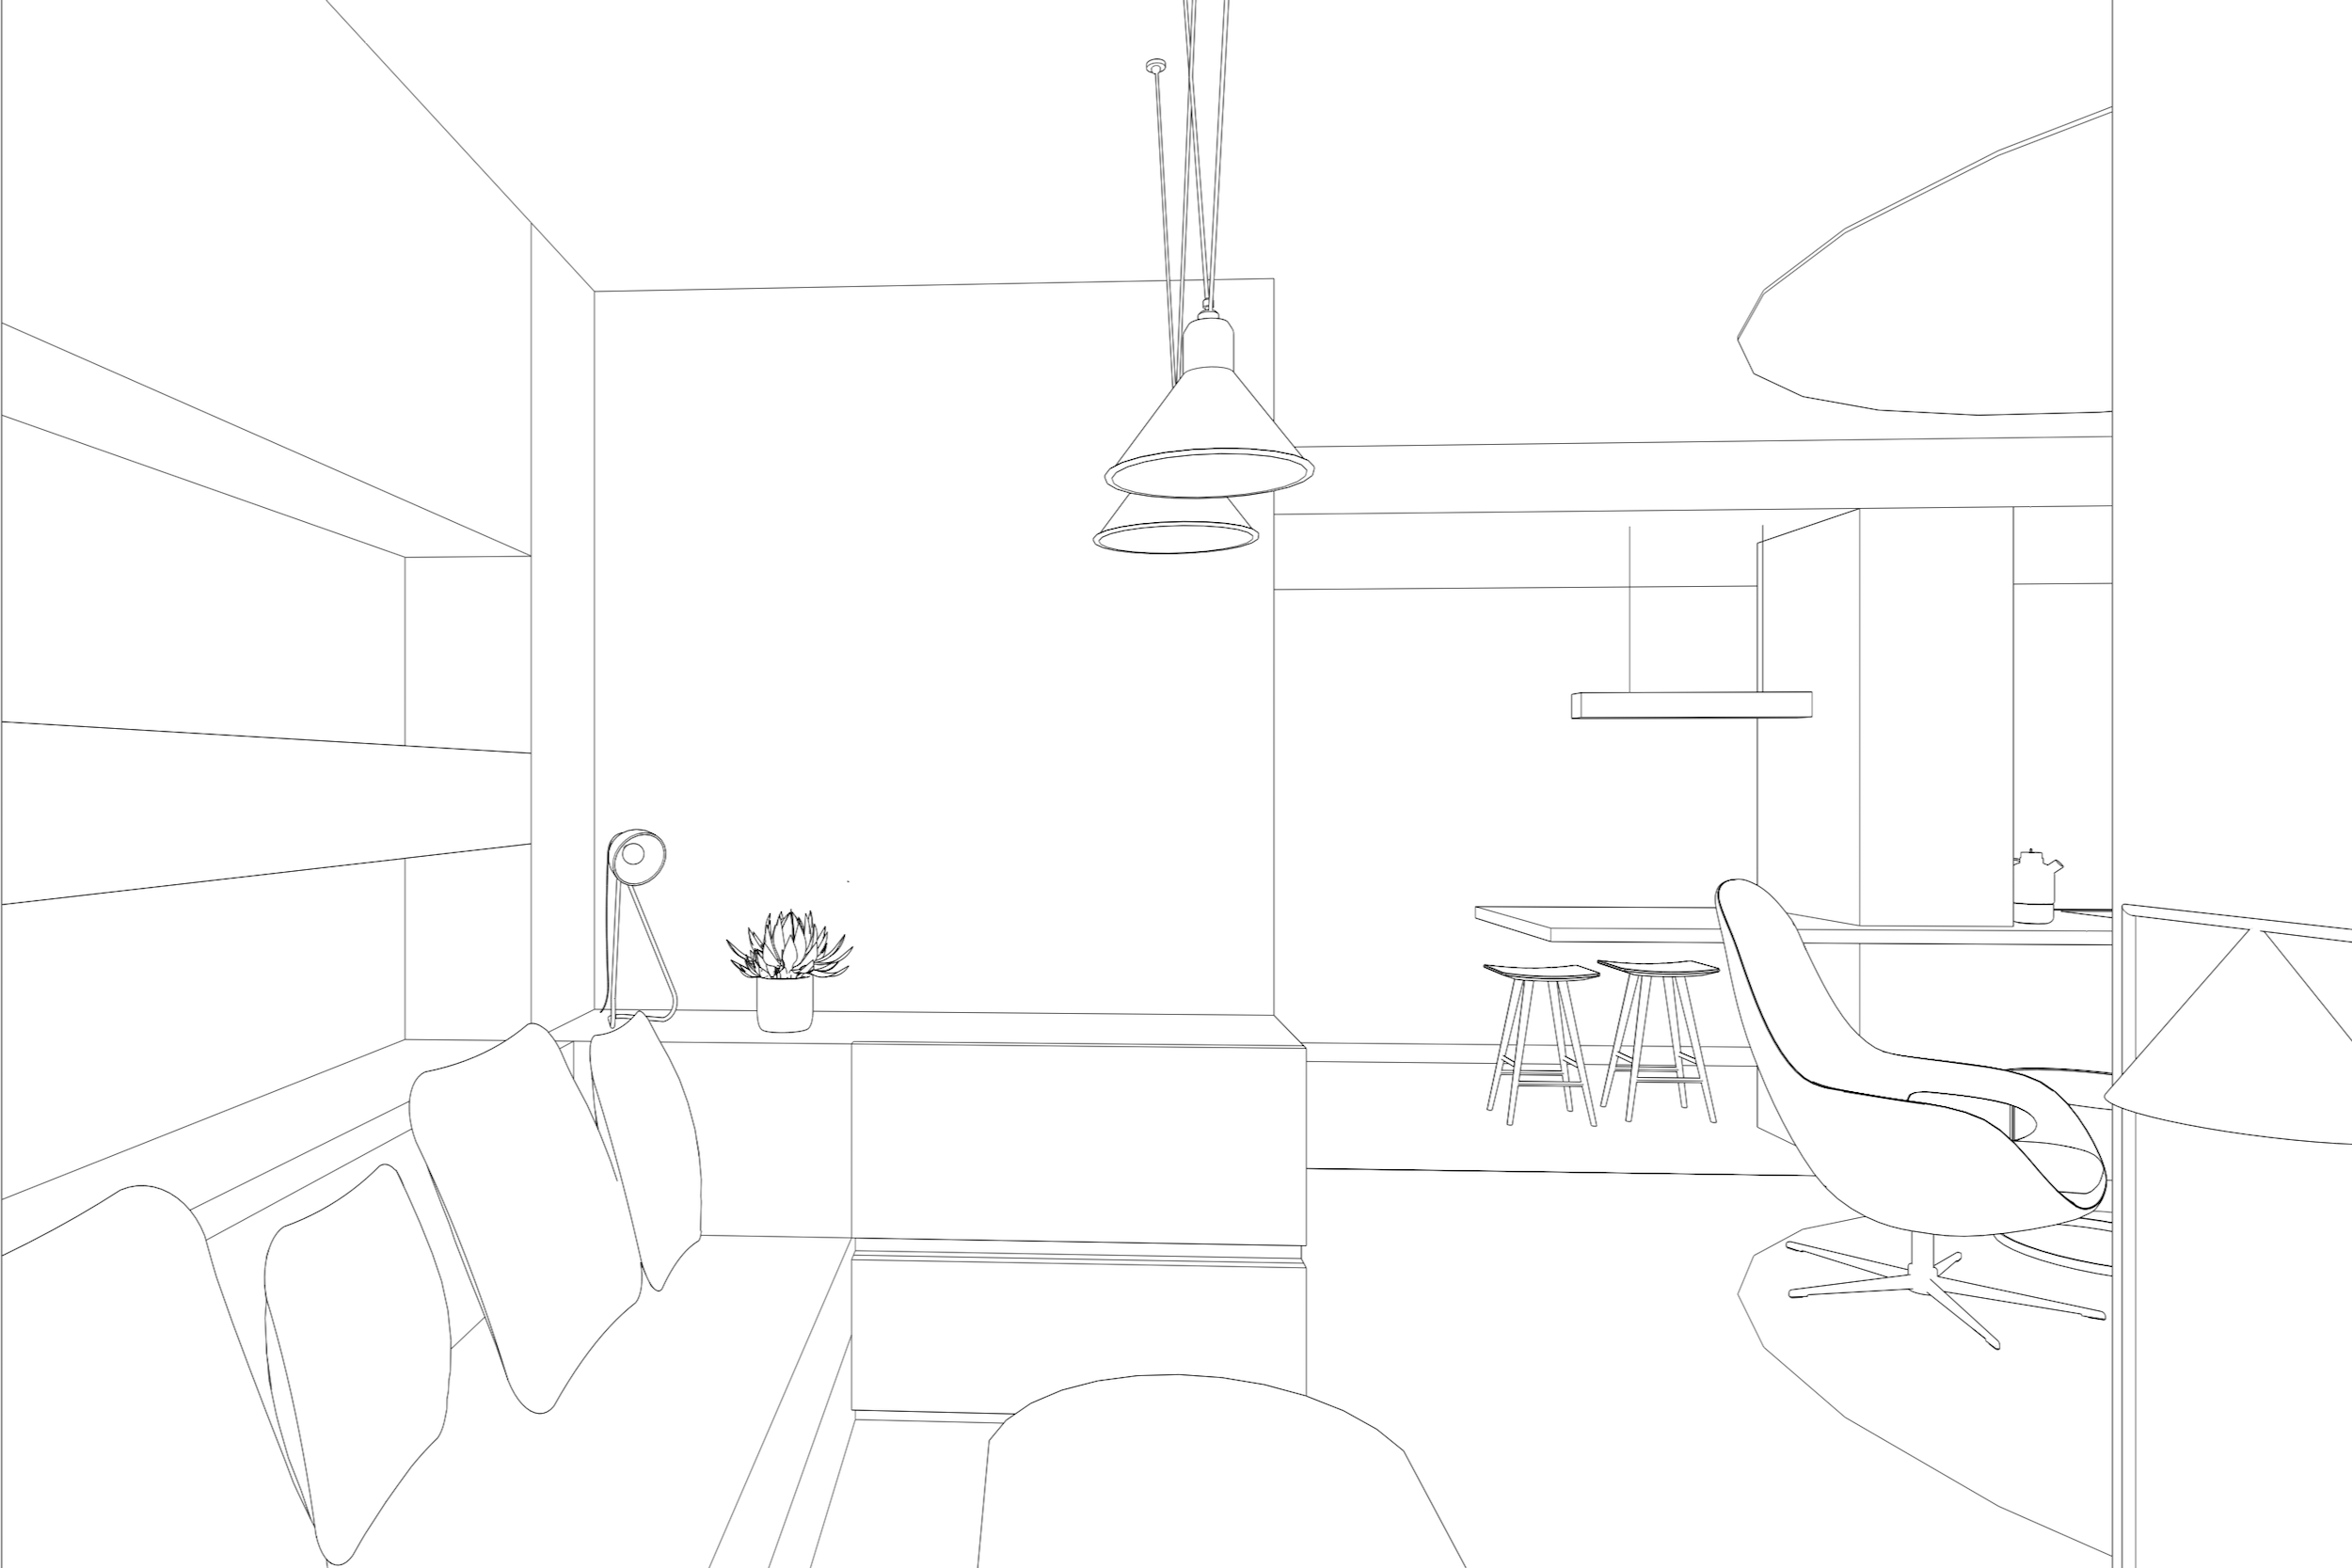 Line rendering of Lola Cwikowski studio office project with lounge area